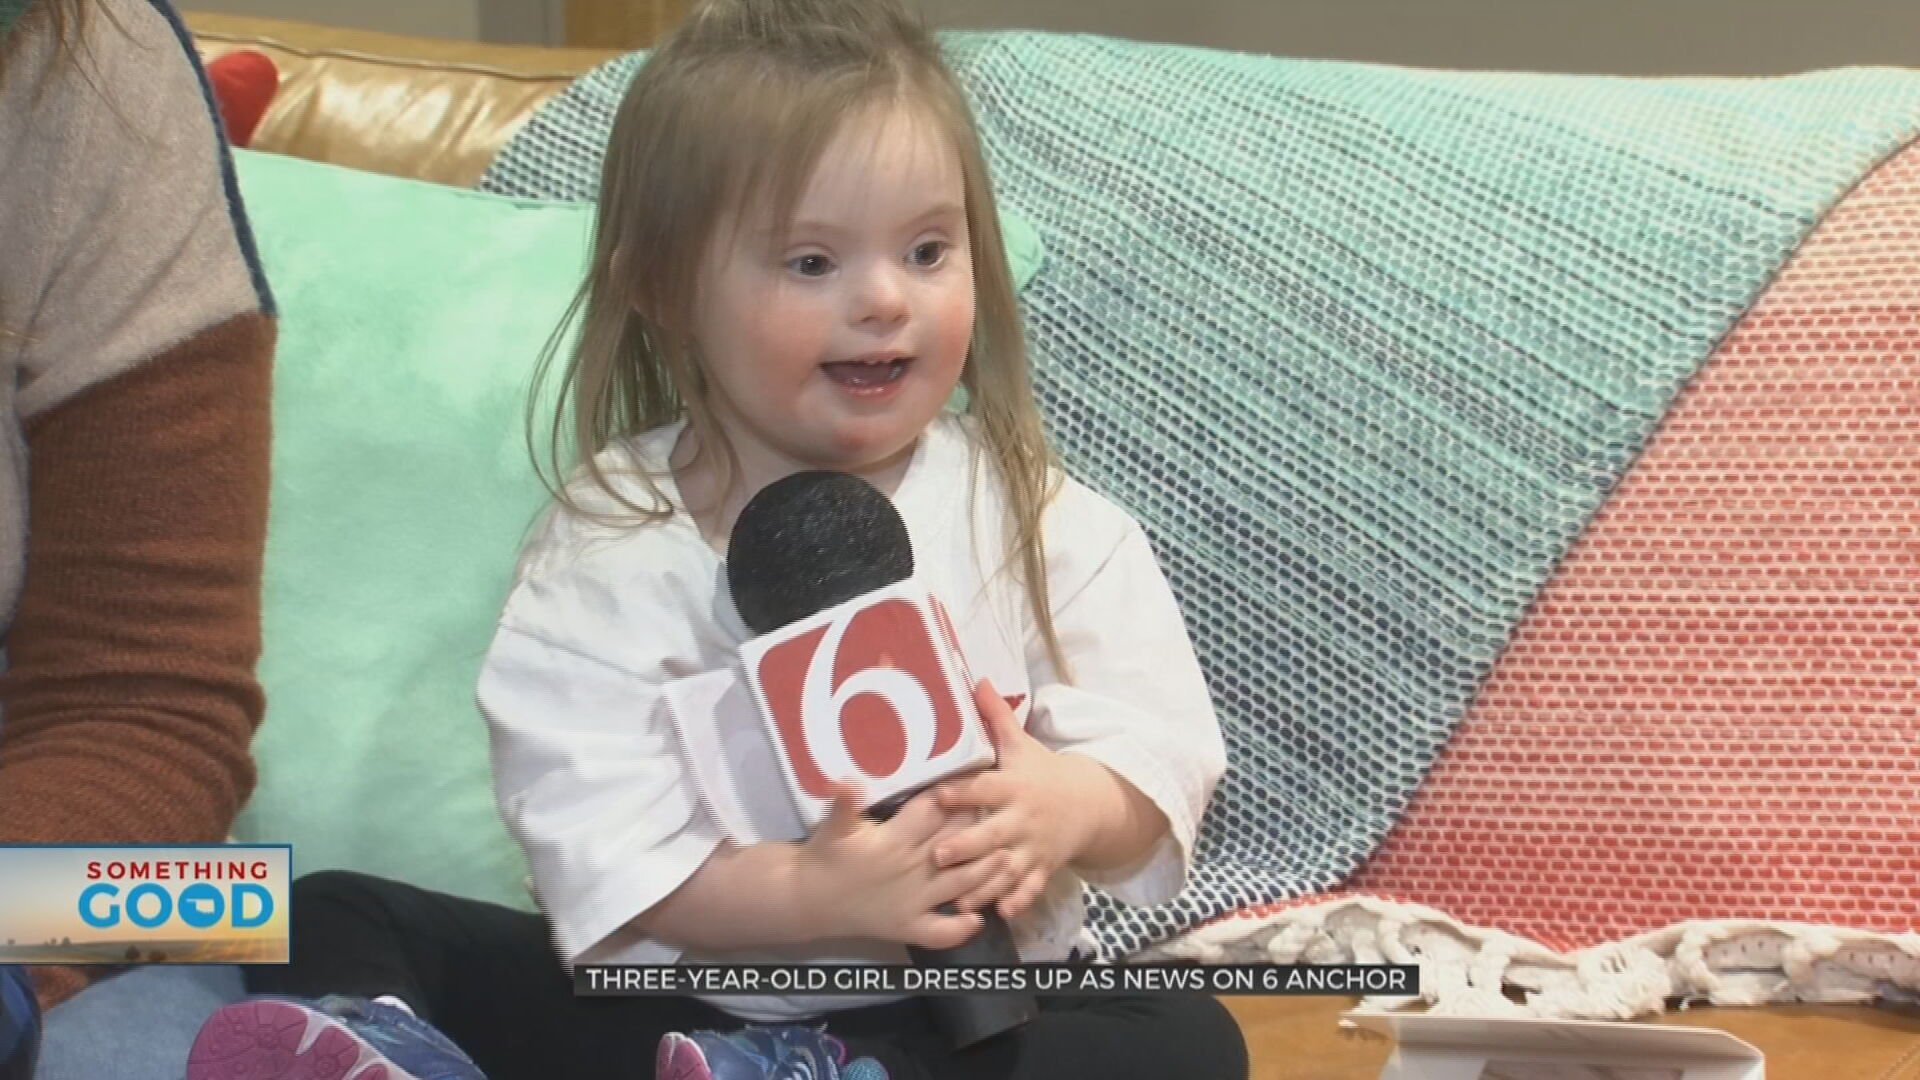 3-Year-Old Girl Joyfully Steals The Show Dressed As News On 6 Anchor